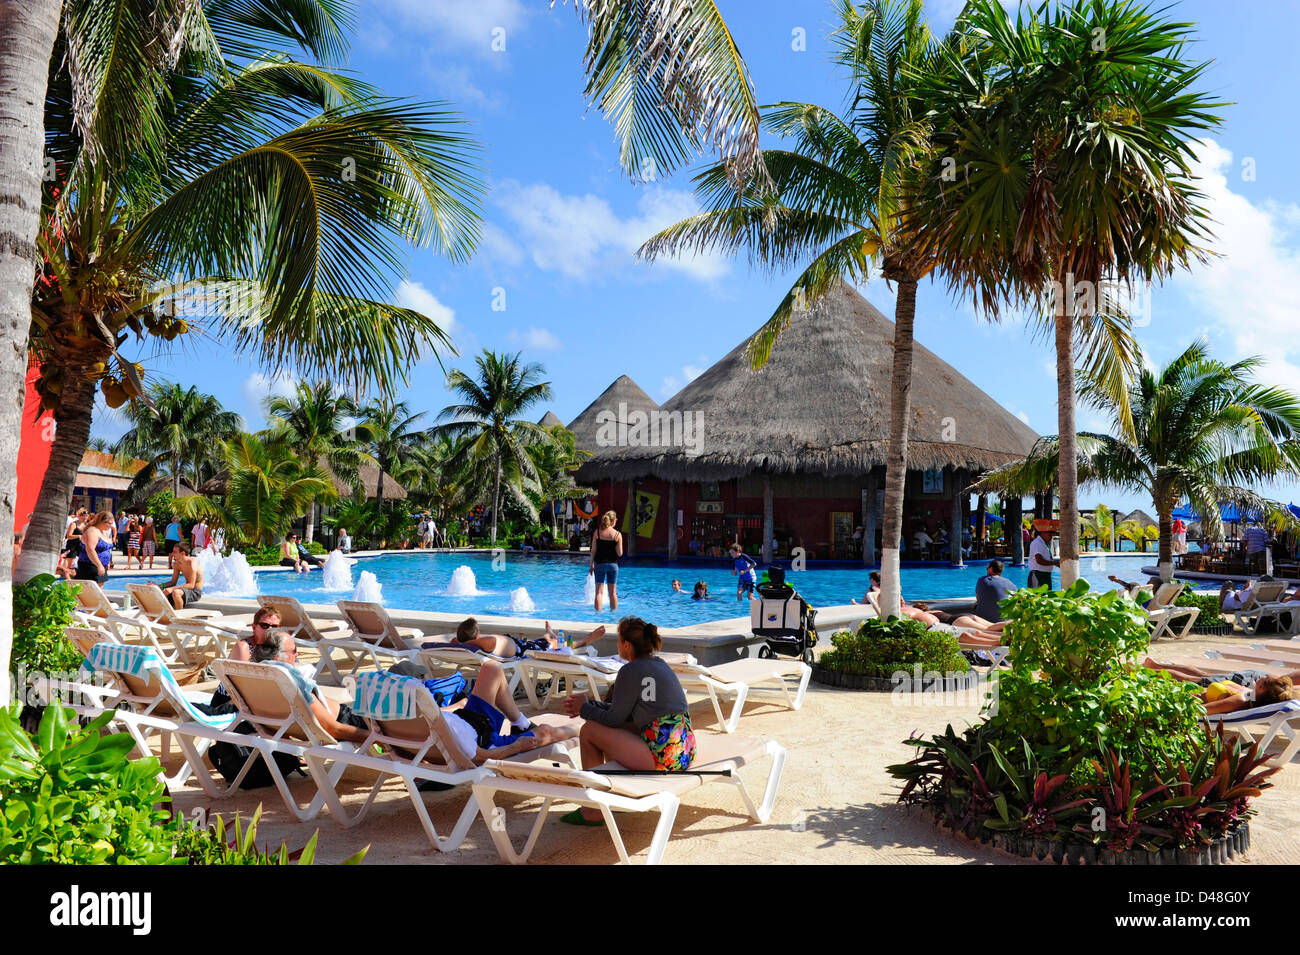 Costa Maya Mexico Beach Caribbean Cruise Ship Port Swimming Pool - Stock Image